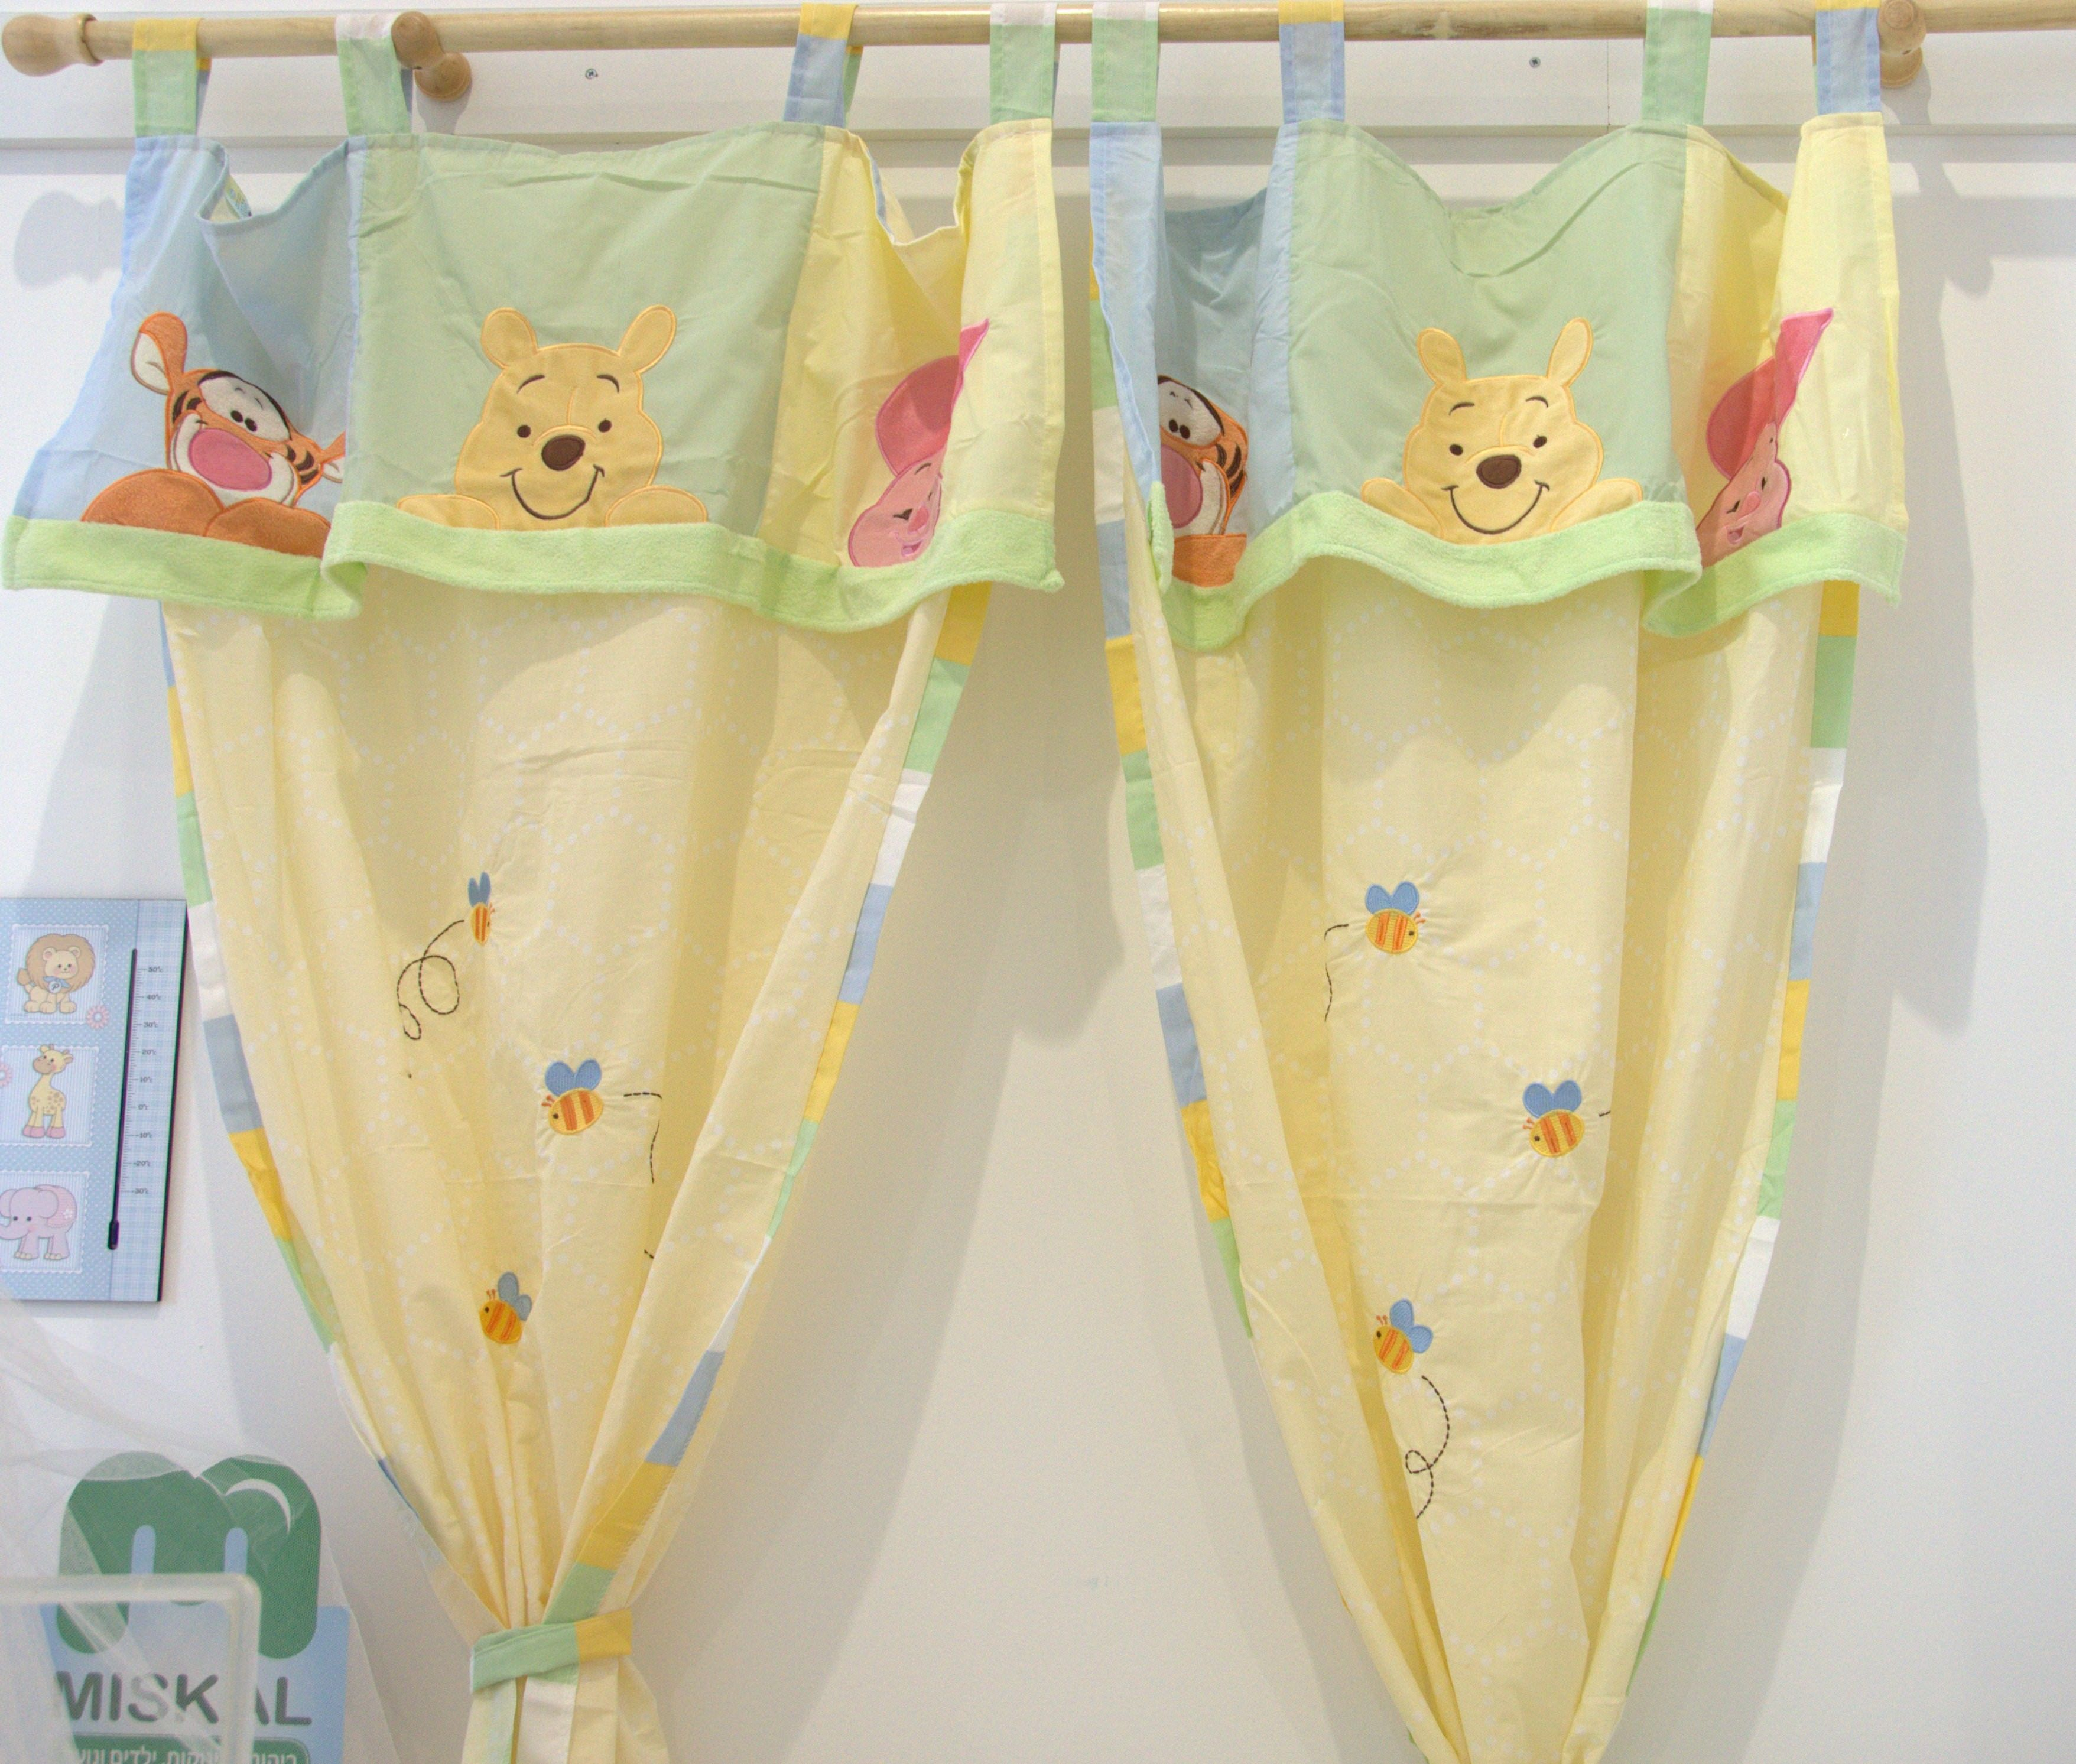 Baby Bedding Sets Hiding Pooh Curtains Baby Nursery Bedding Baby Bed Baby Bedding Sets Baby Nursery Bedding